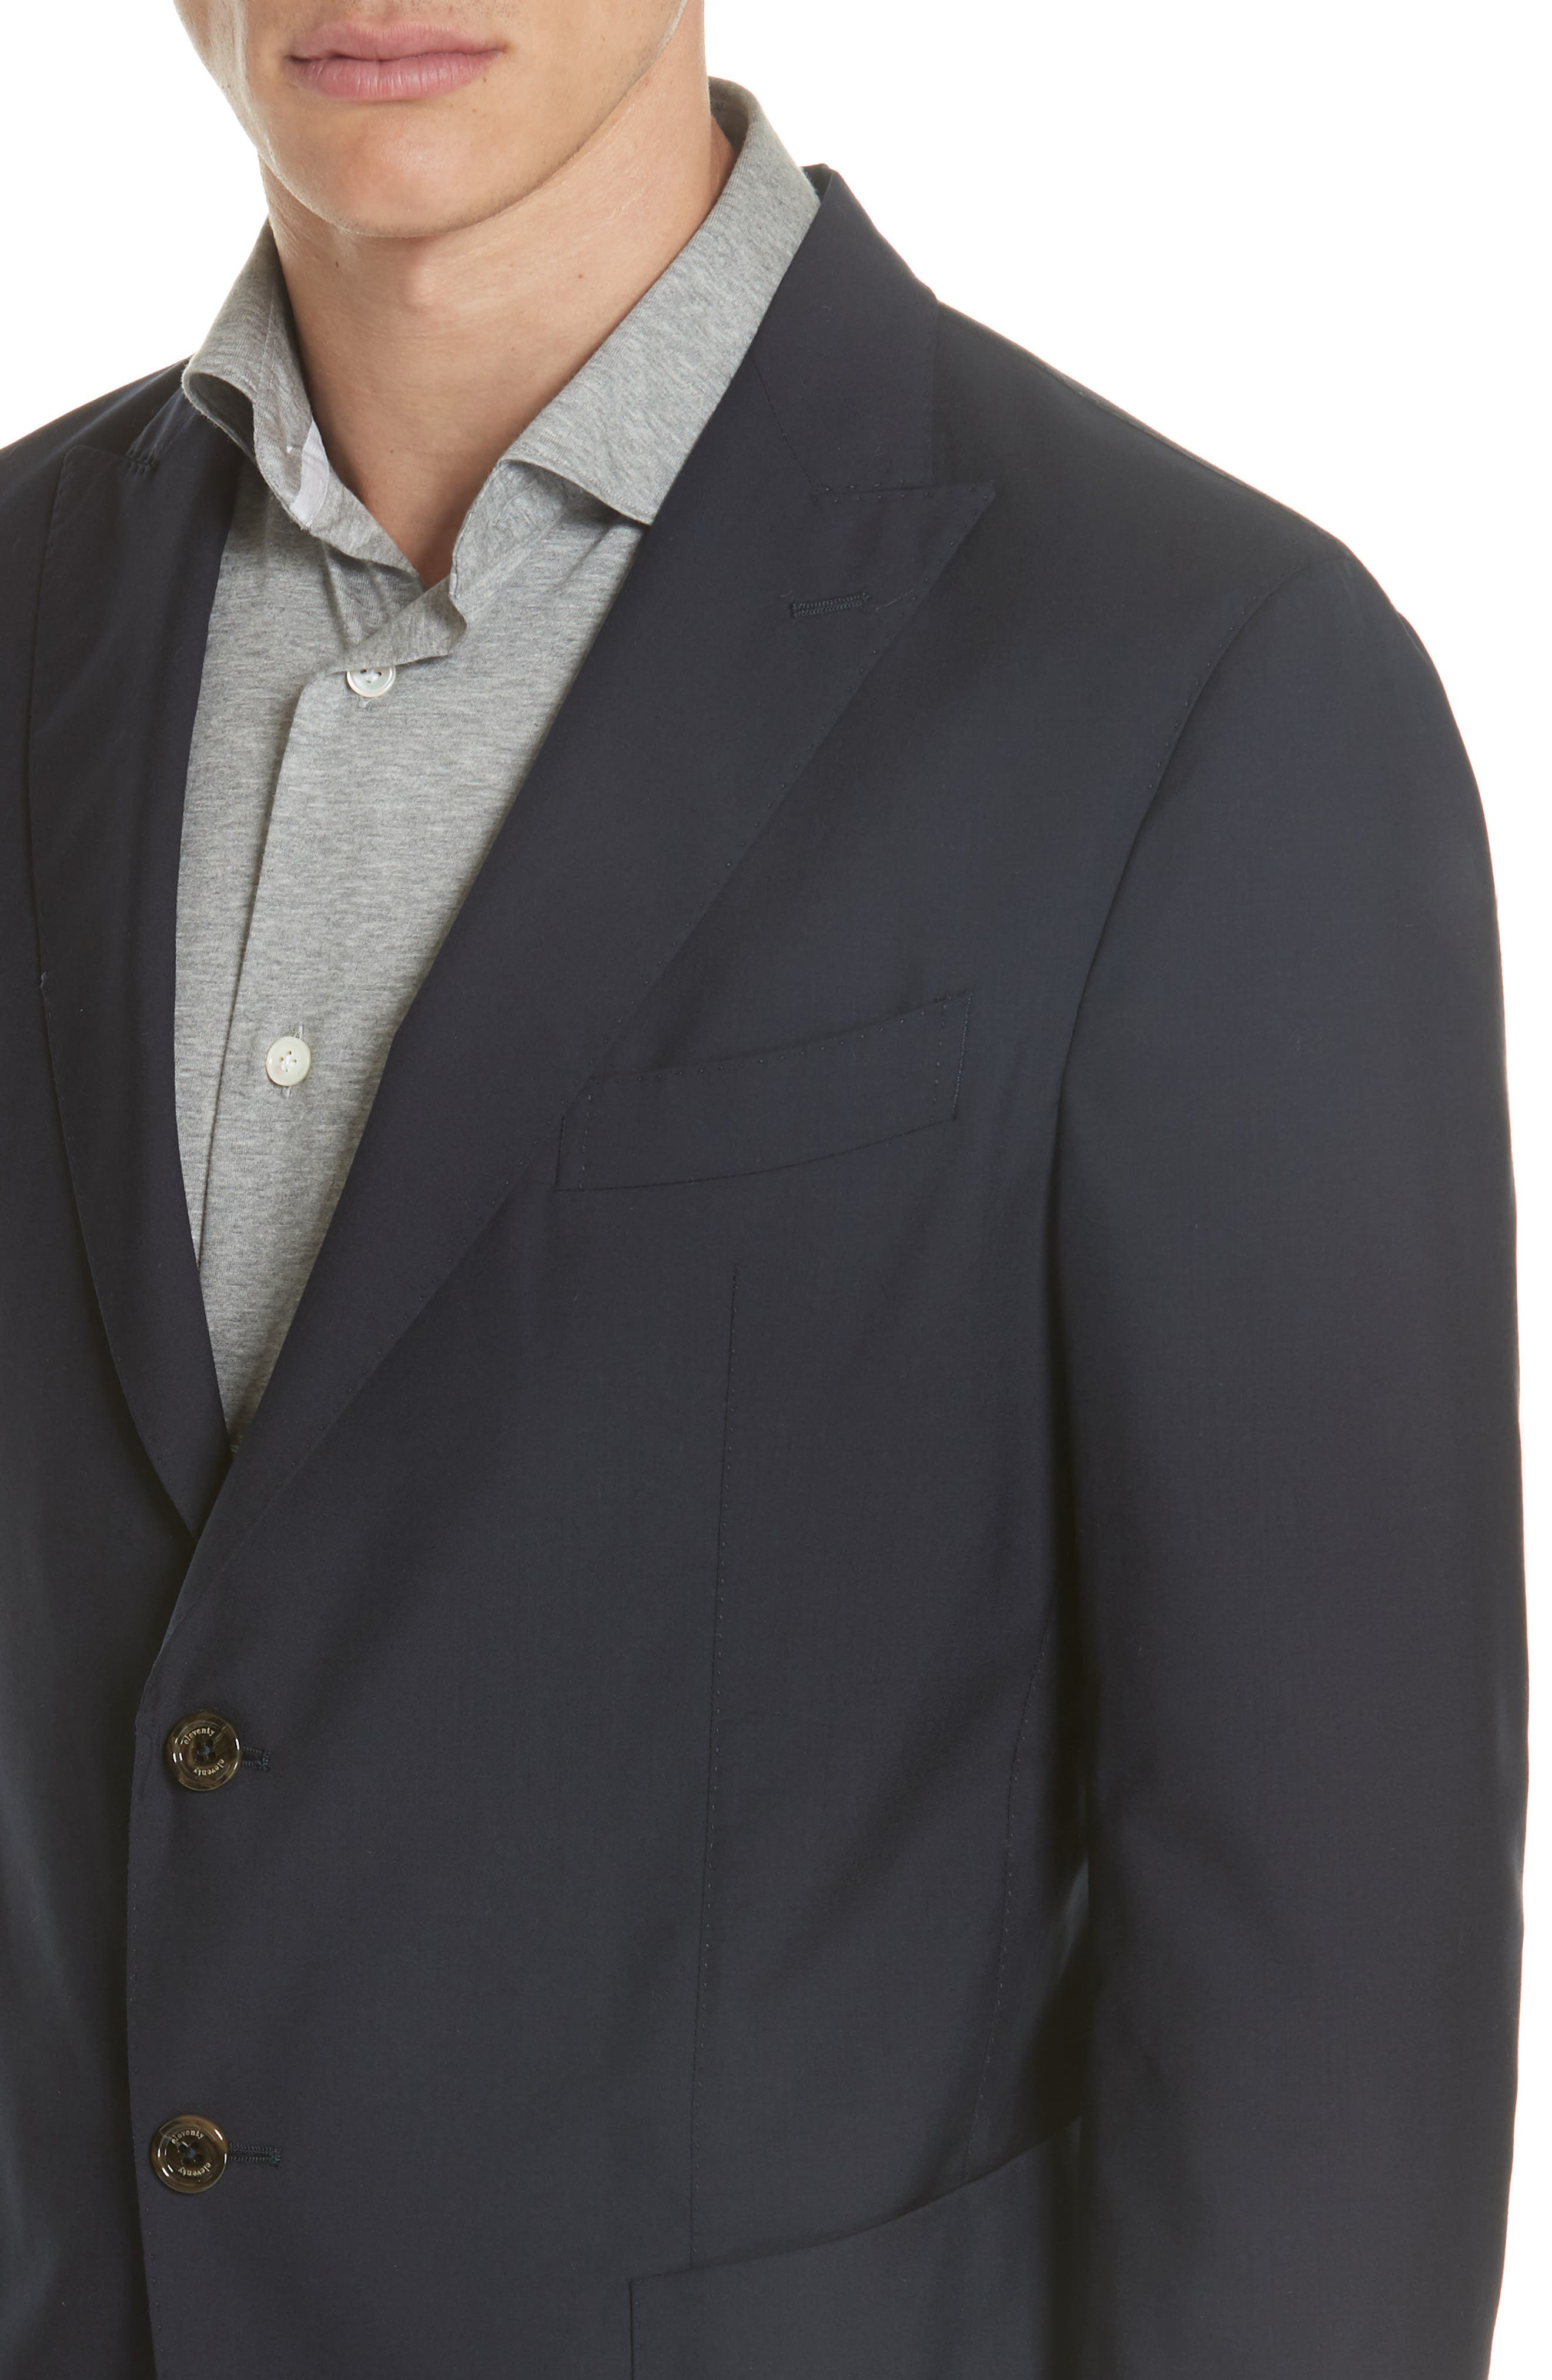 Trim Fit Wool Blazer,                             Alternate thumbnail 4, color,                             400